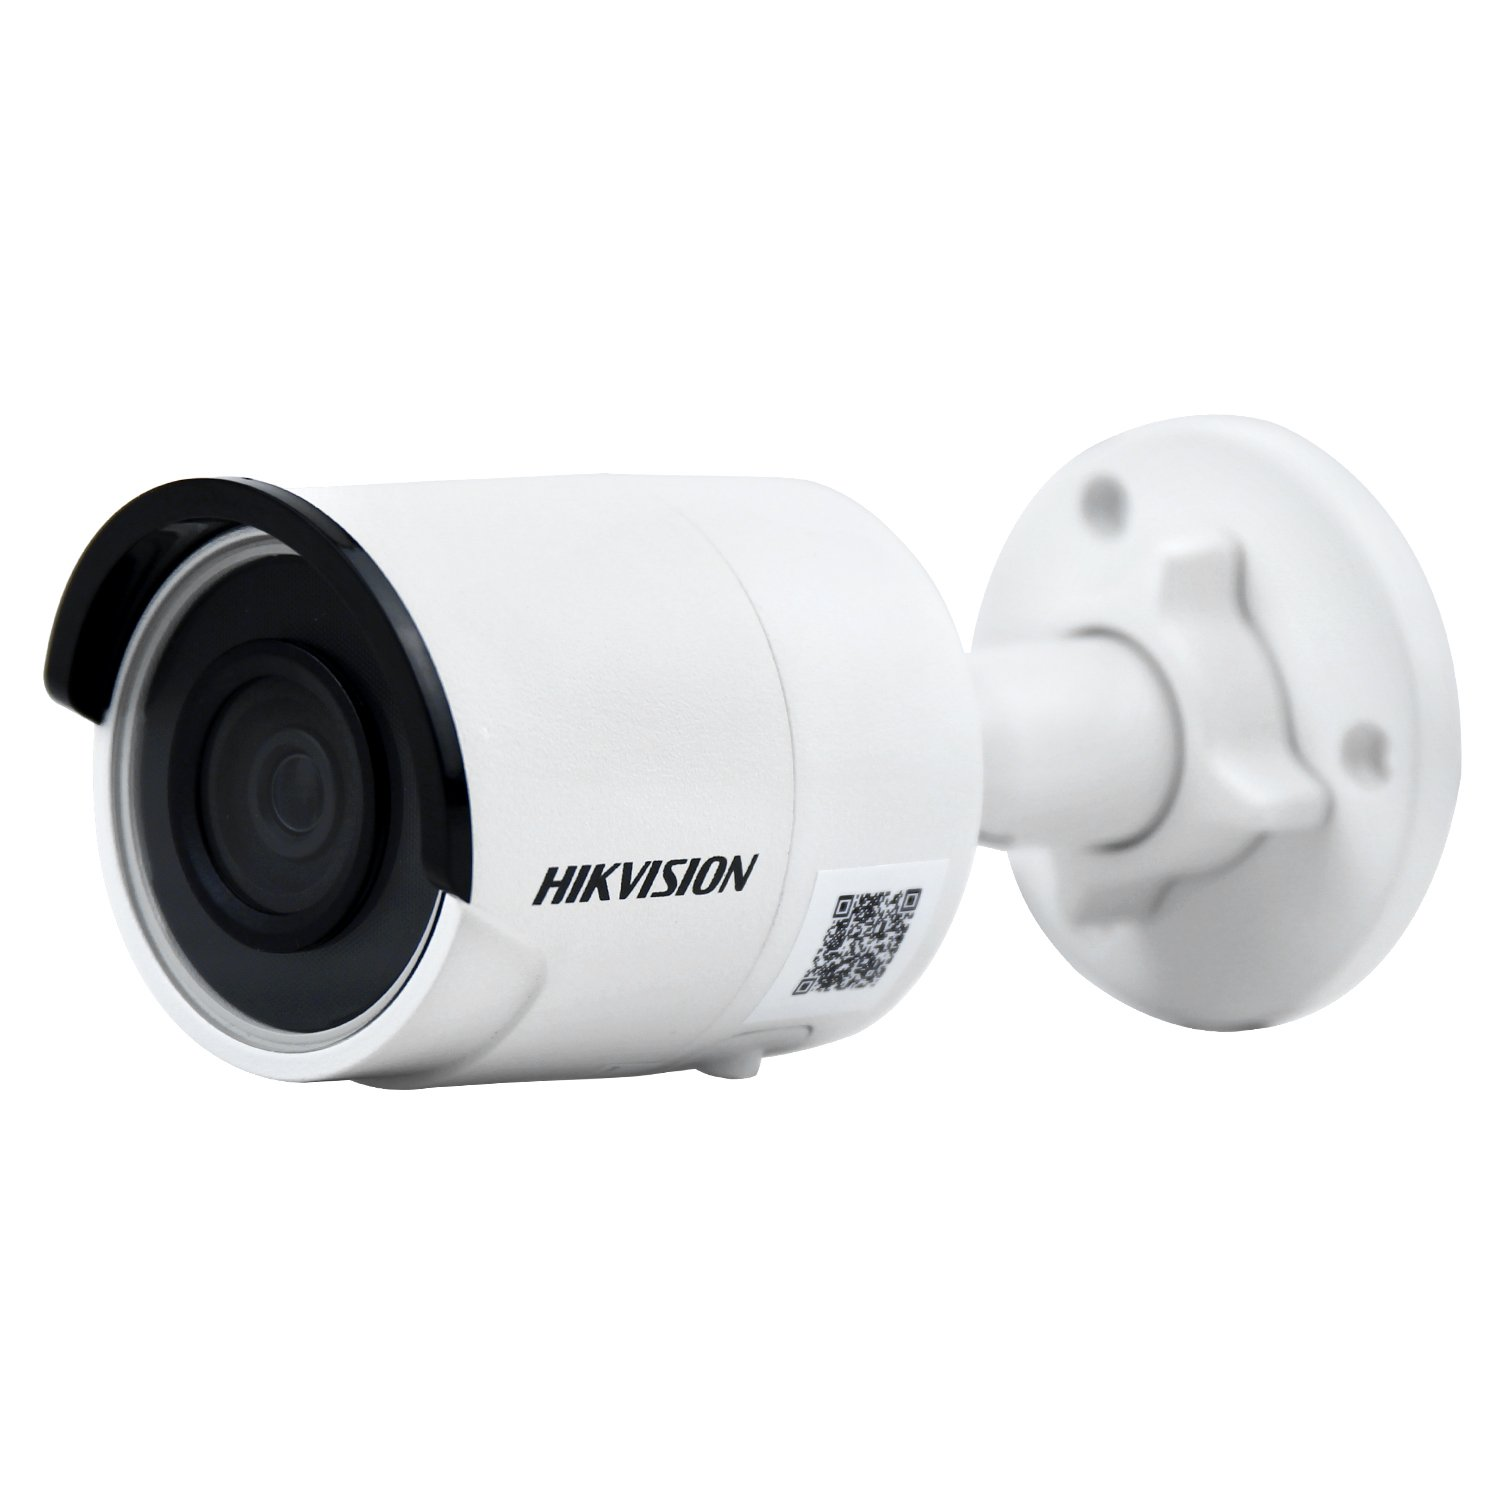 HIKVISION DS-2CD2085FWD-I Update Vision DS-2CD2083G0-I 8.0 MP Outdoor with IR-Cut Prime 128 Day Night Motion Detection PoE Remote Access Plug and Play IR-Cut IP-6mm